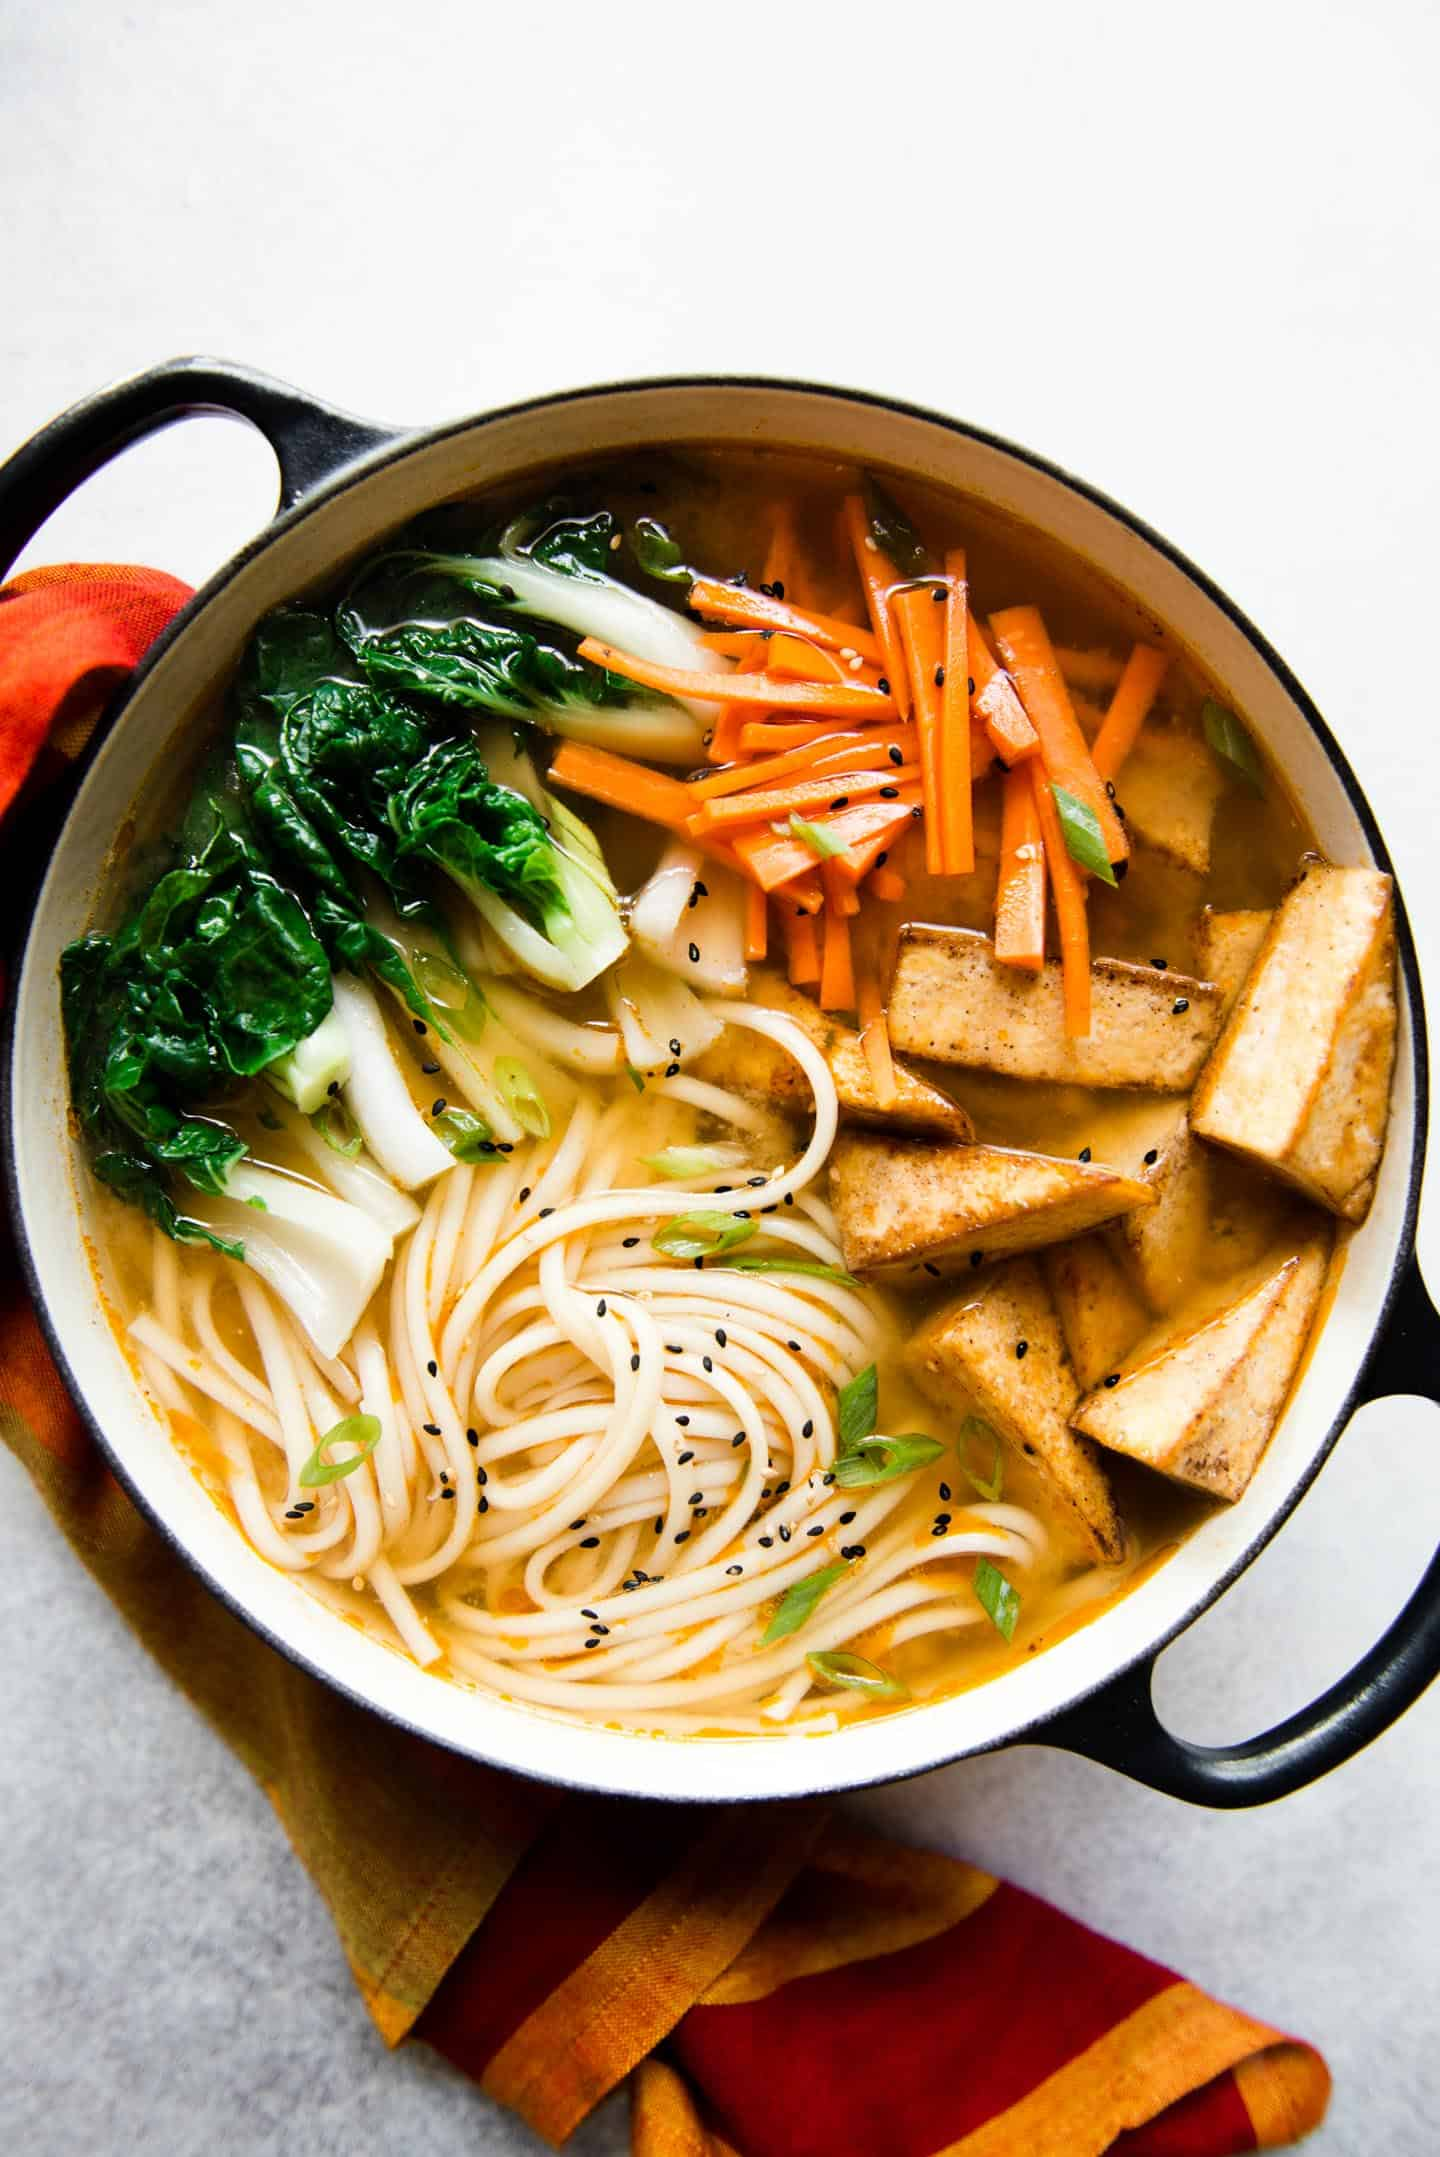 Ginger Miso Udon Noodle Soup with Five-Spice Tofu